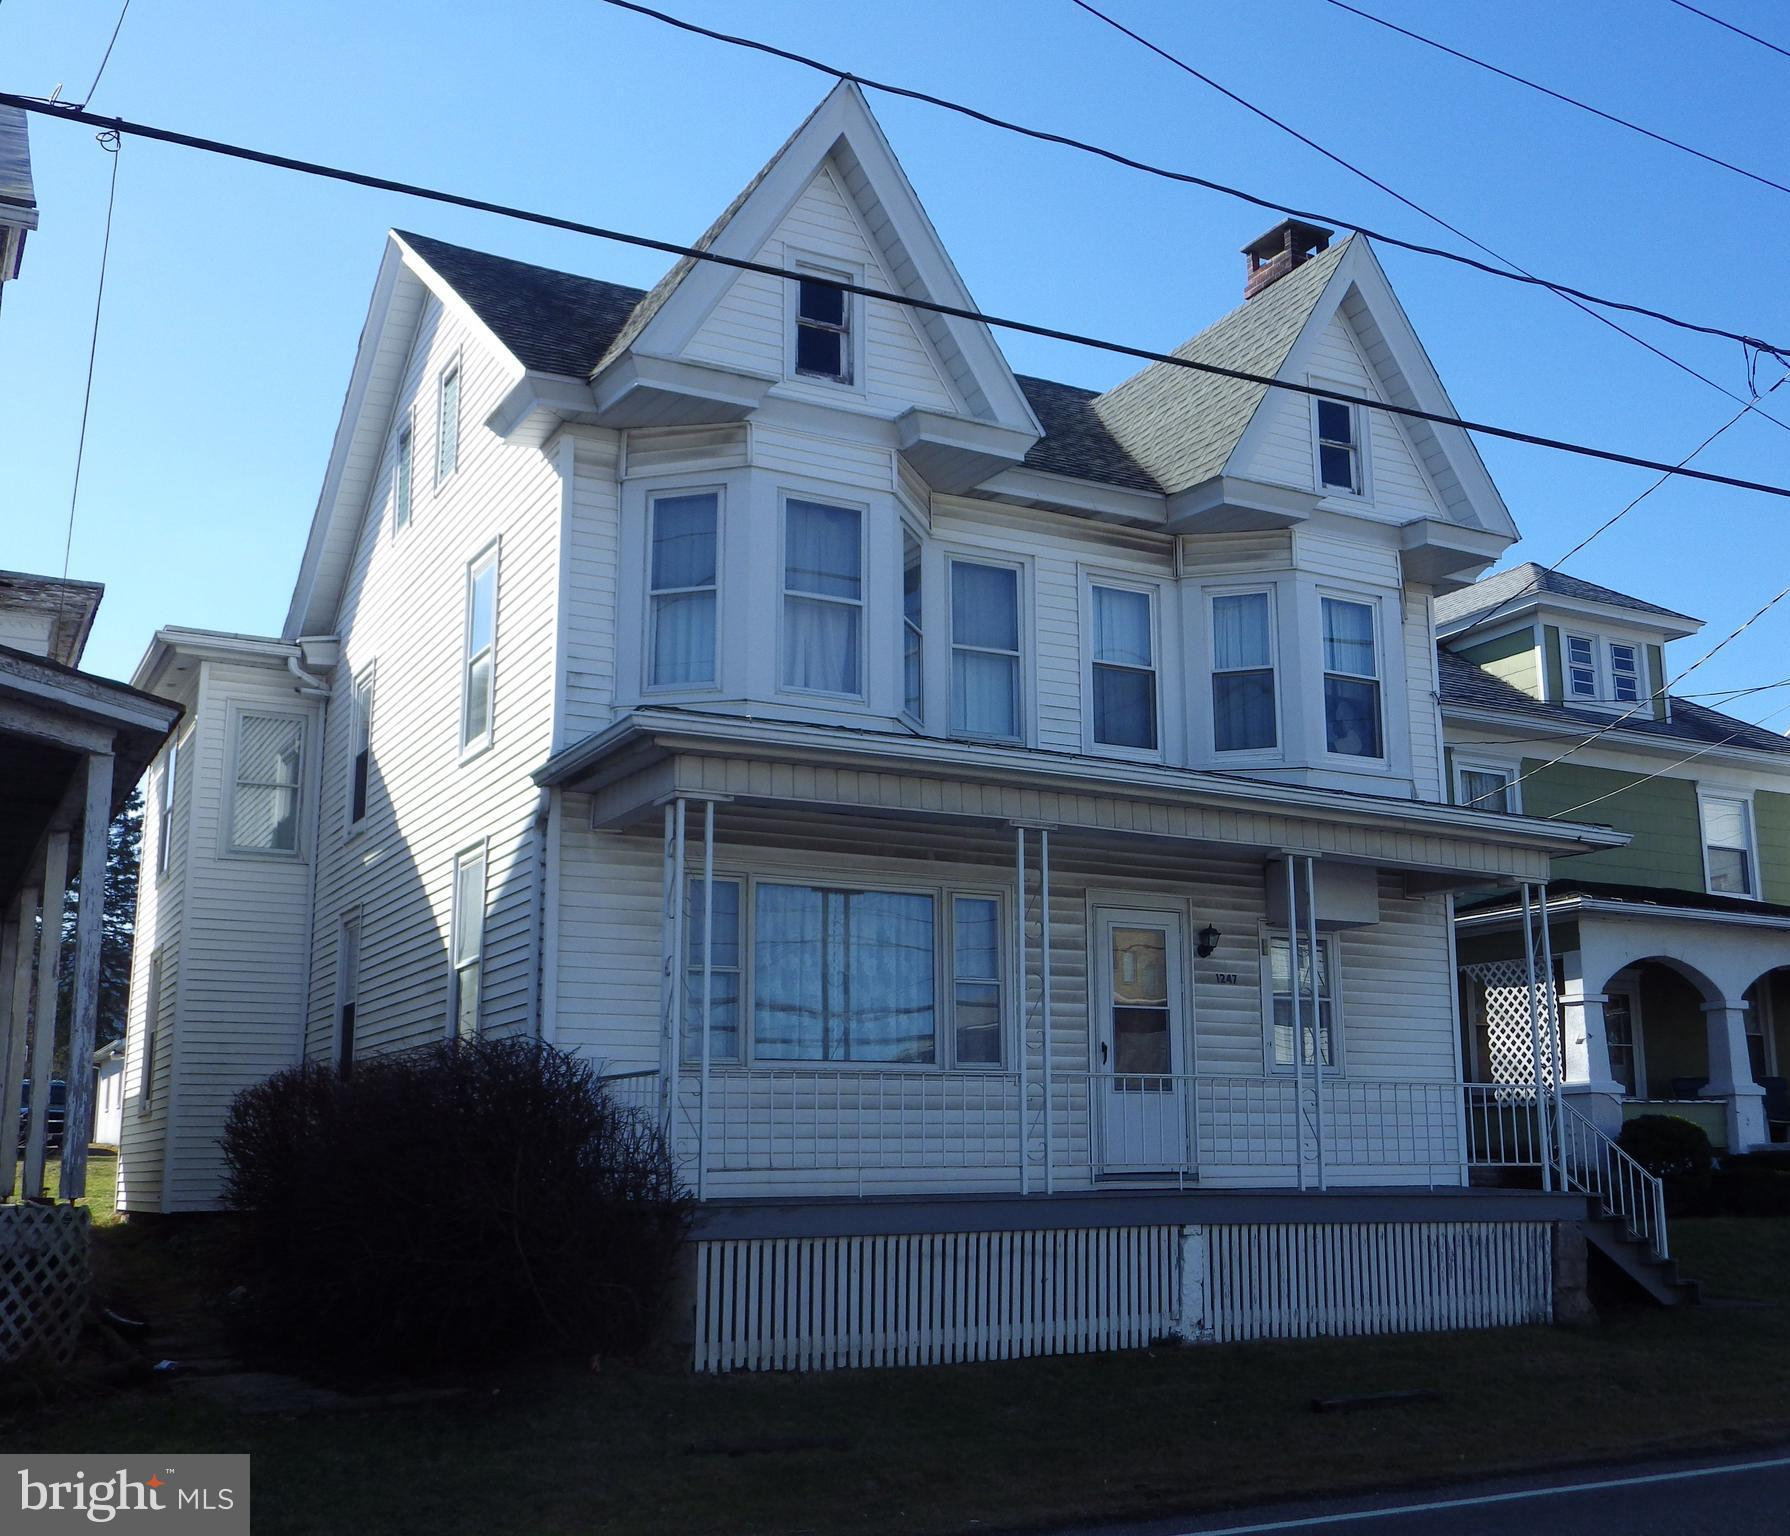 1247 W MAIN STREET, VALLEY VIEW, PA 17983